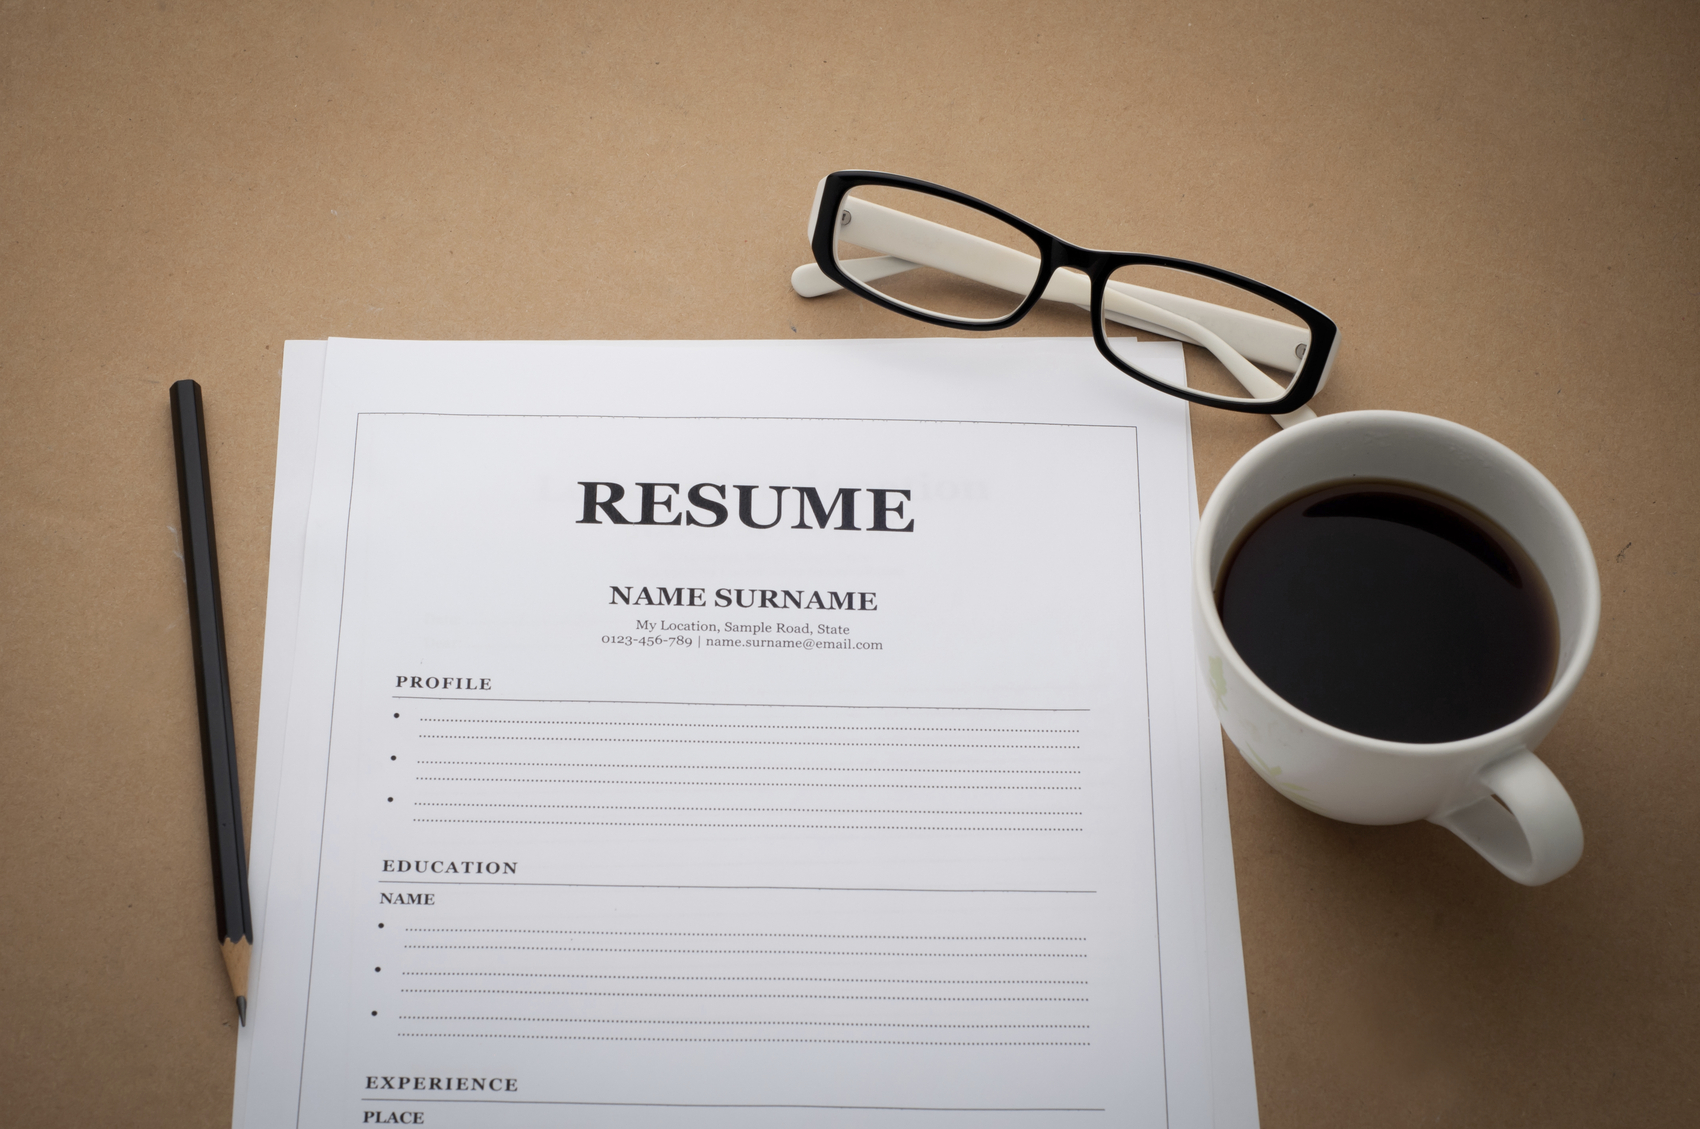 resume writing 101 - Resume Writing